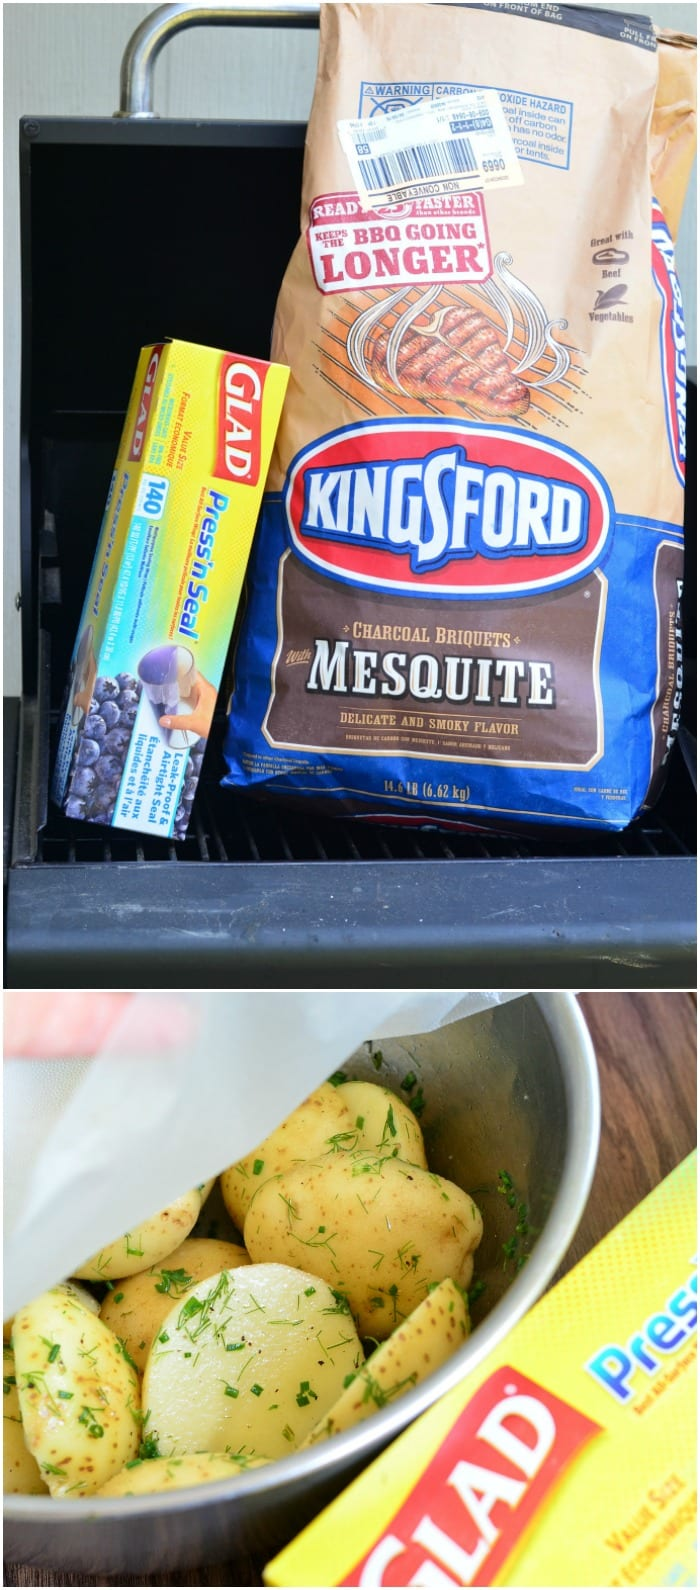 a box of Glad press and seal and a bag of kingsford mesquite charcoal